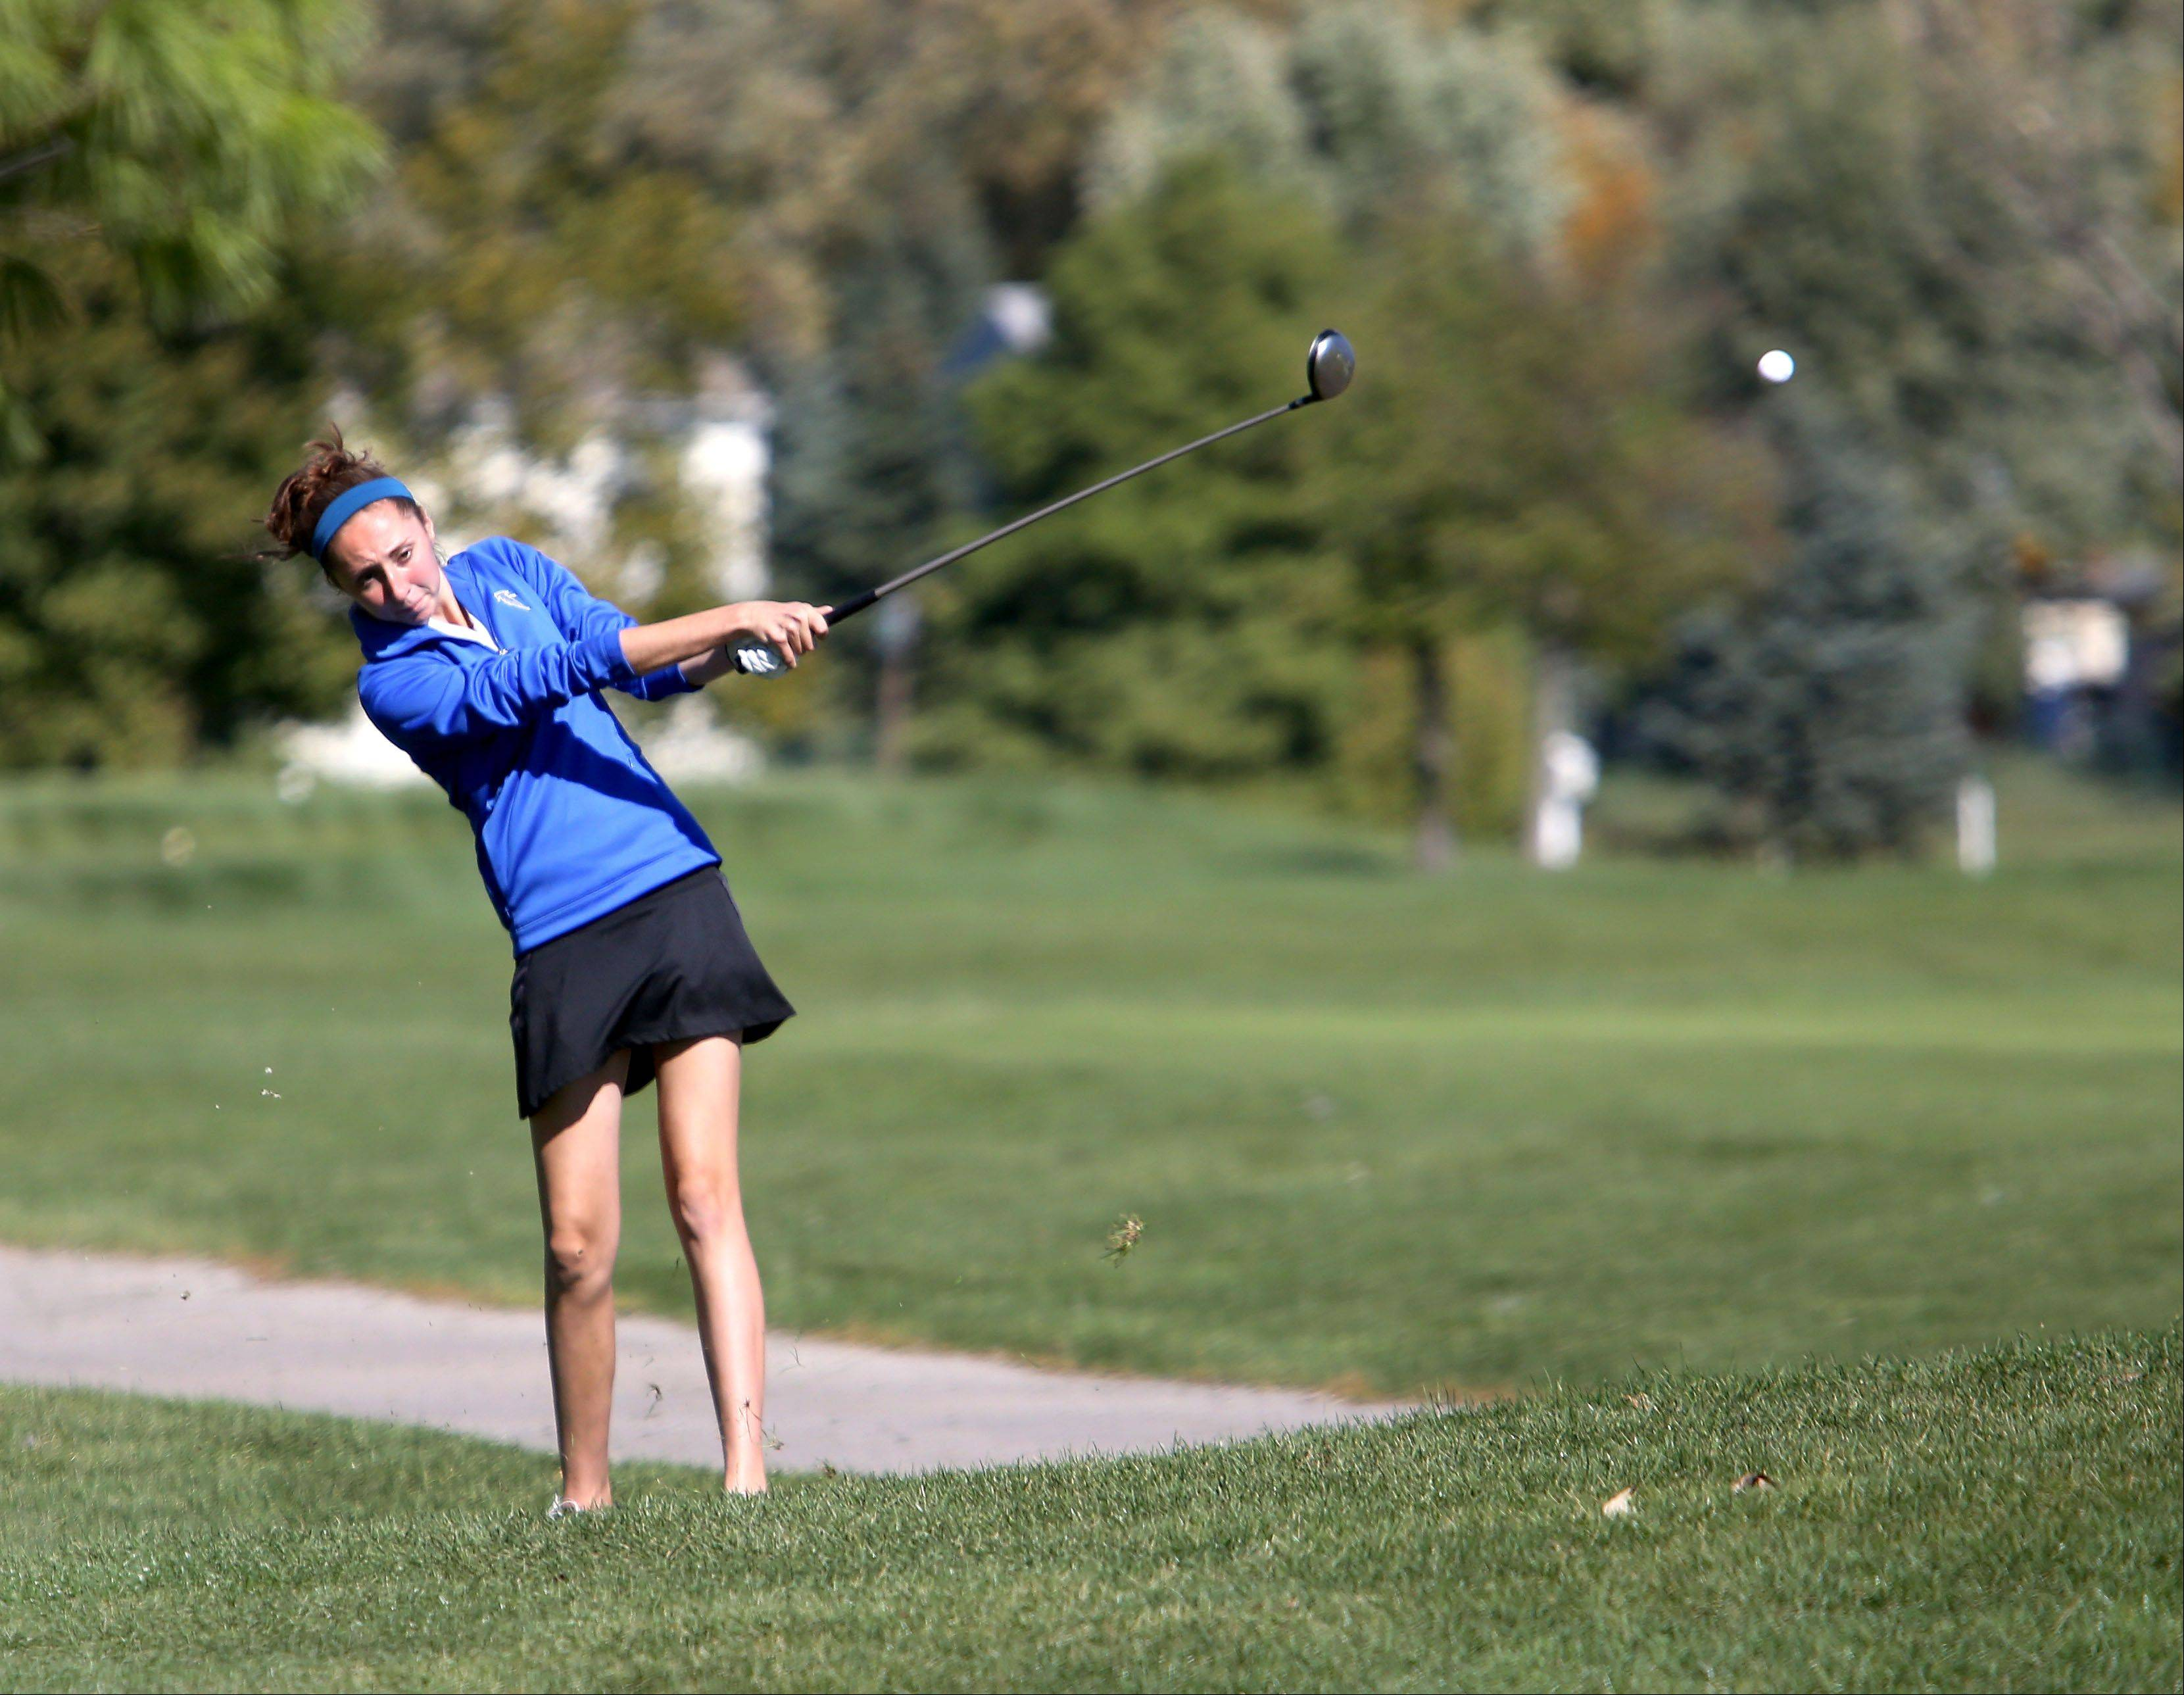 Caitlin Berry of Wheaton North hits on the 11th fairway during Class AA Glenbard East regional girls golf at Glendale Lakes Golf Course in Glendale Heights on Wednesday.